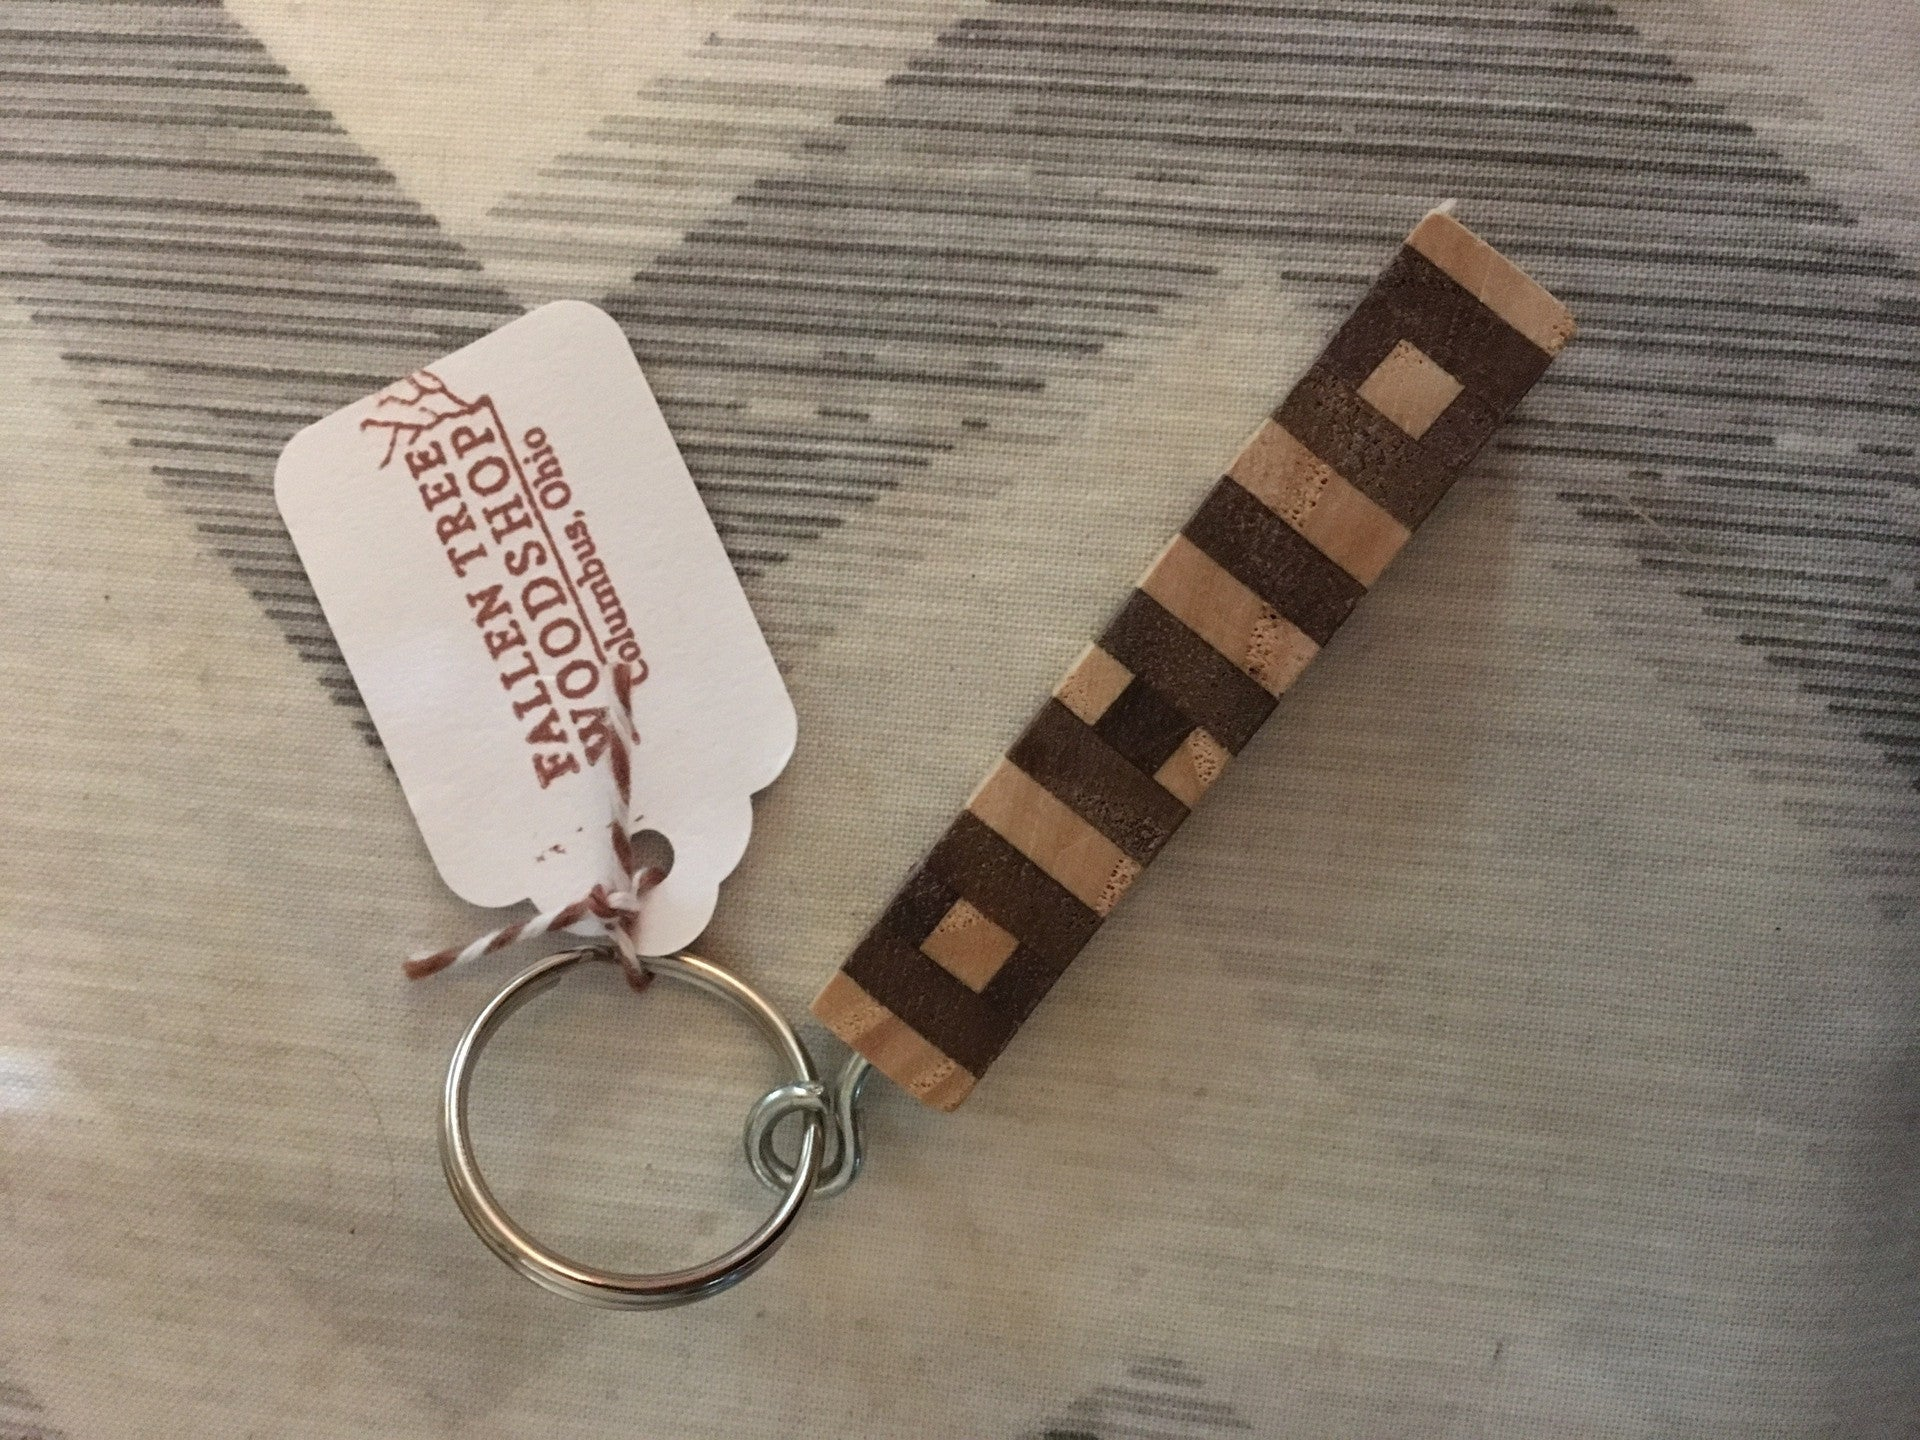 OHIO Wood Inlay Trim Key Chain - Celebrate Local, Shop The Best of Ohio